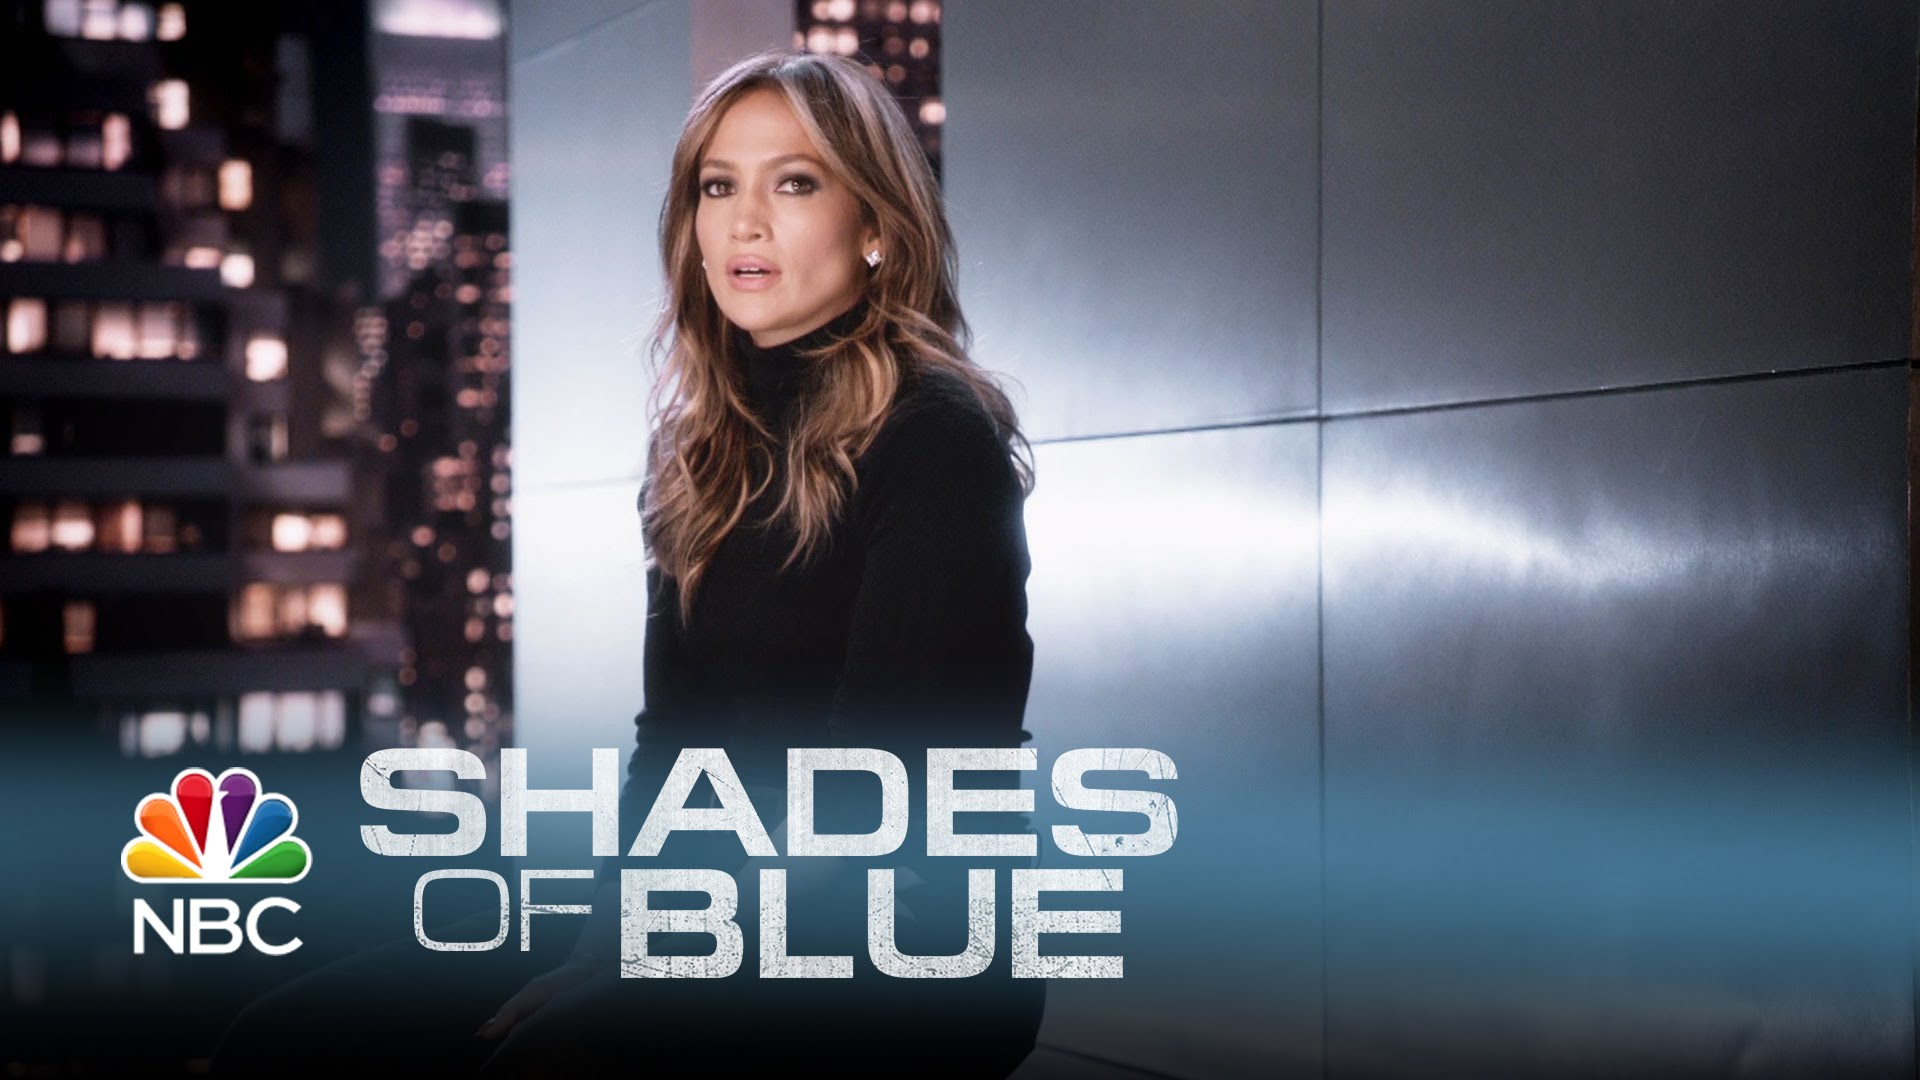 Shades Of Blue Interiors: Shades Of Blue TV Series HD Wallpapers